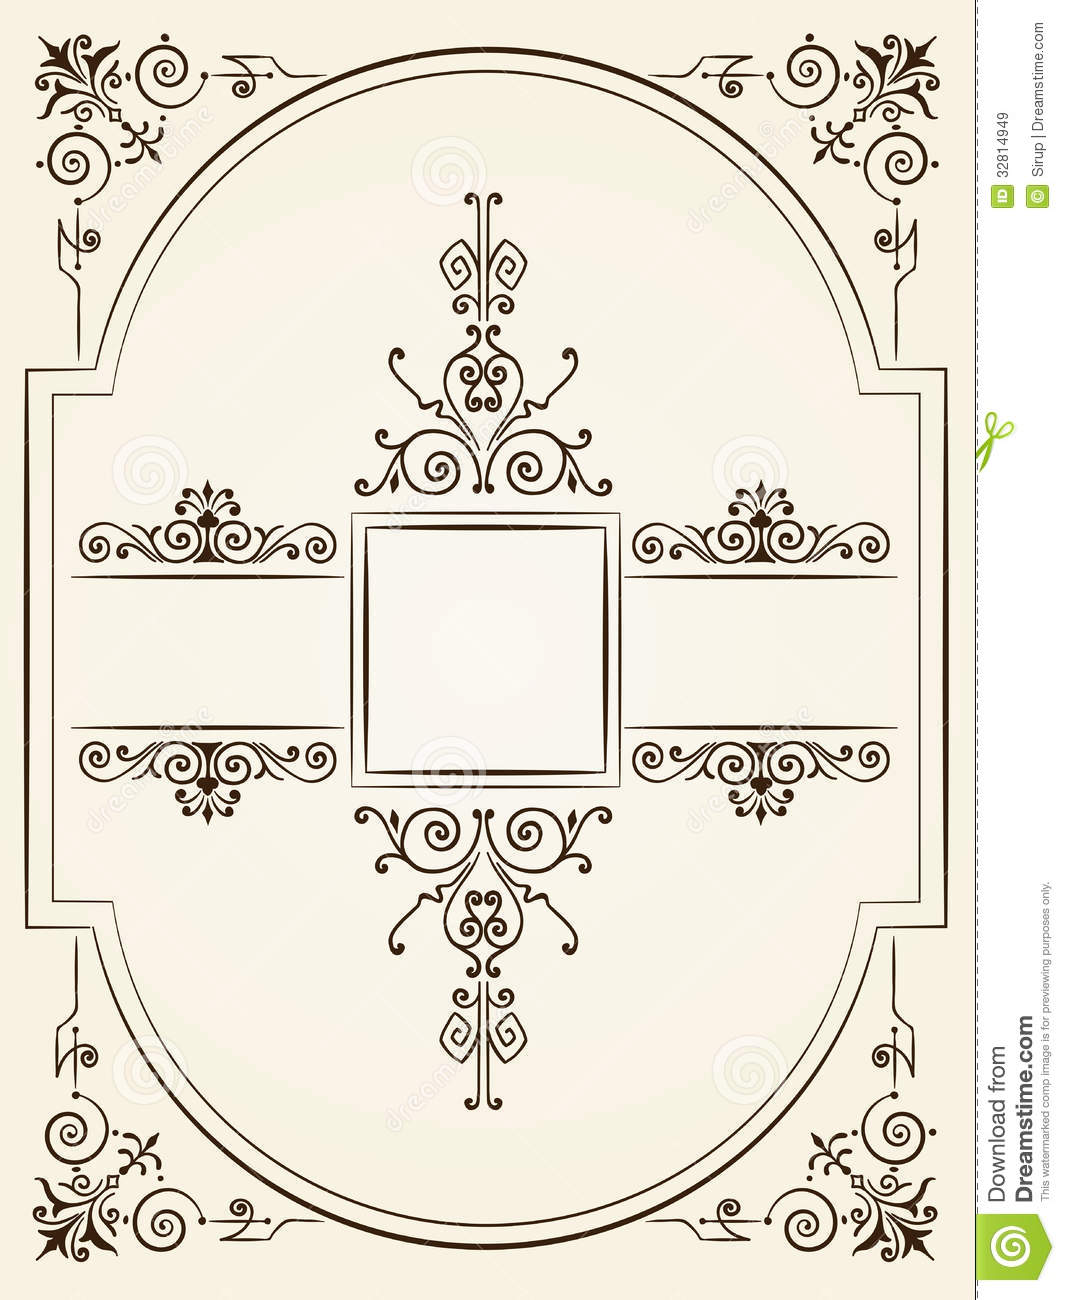 Vintage baroque style ornament design royalty free stock for Baroque architecture elements